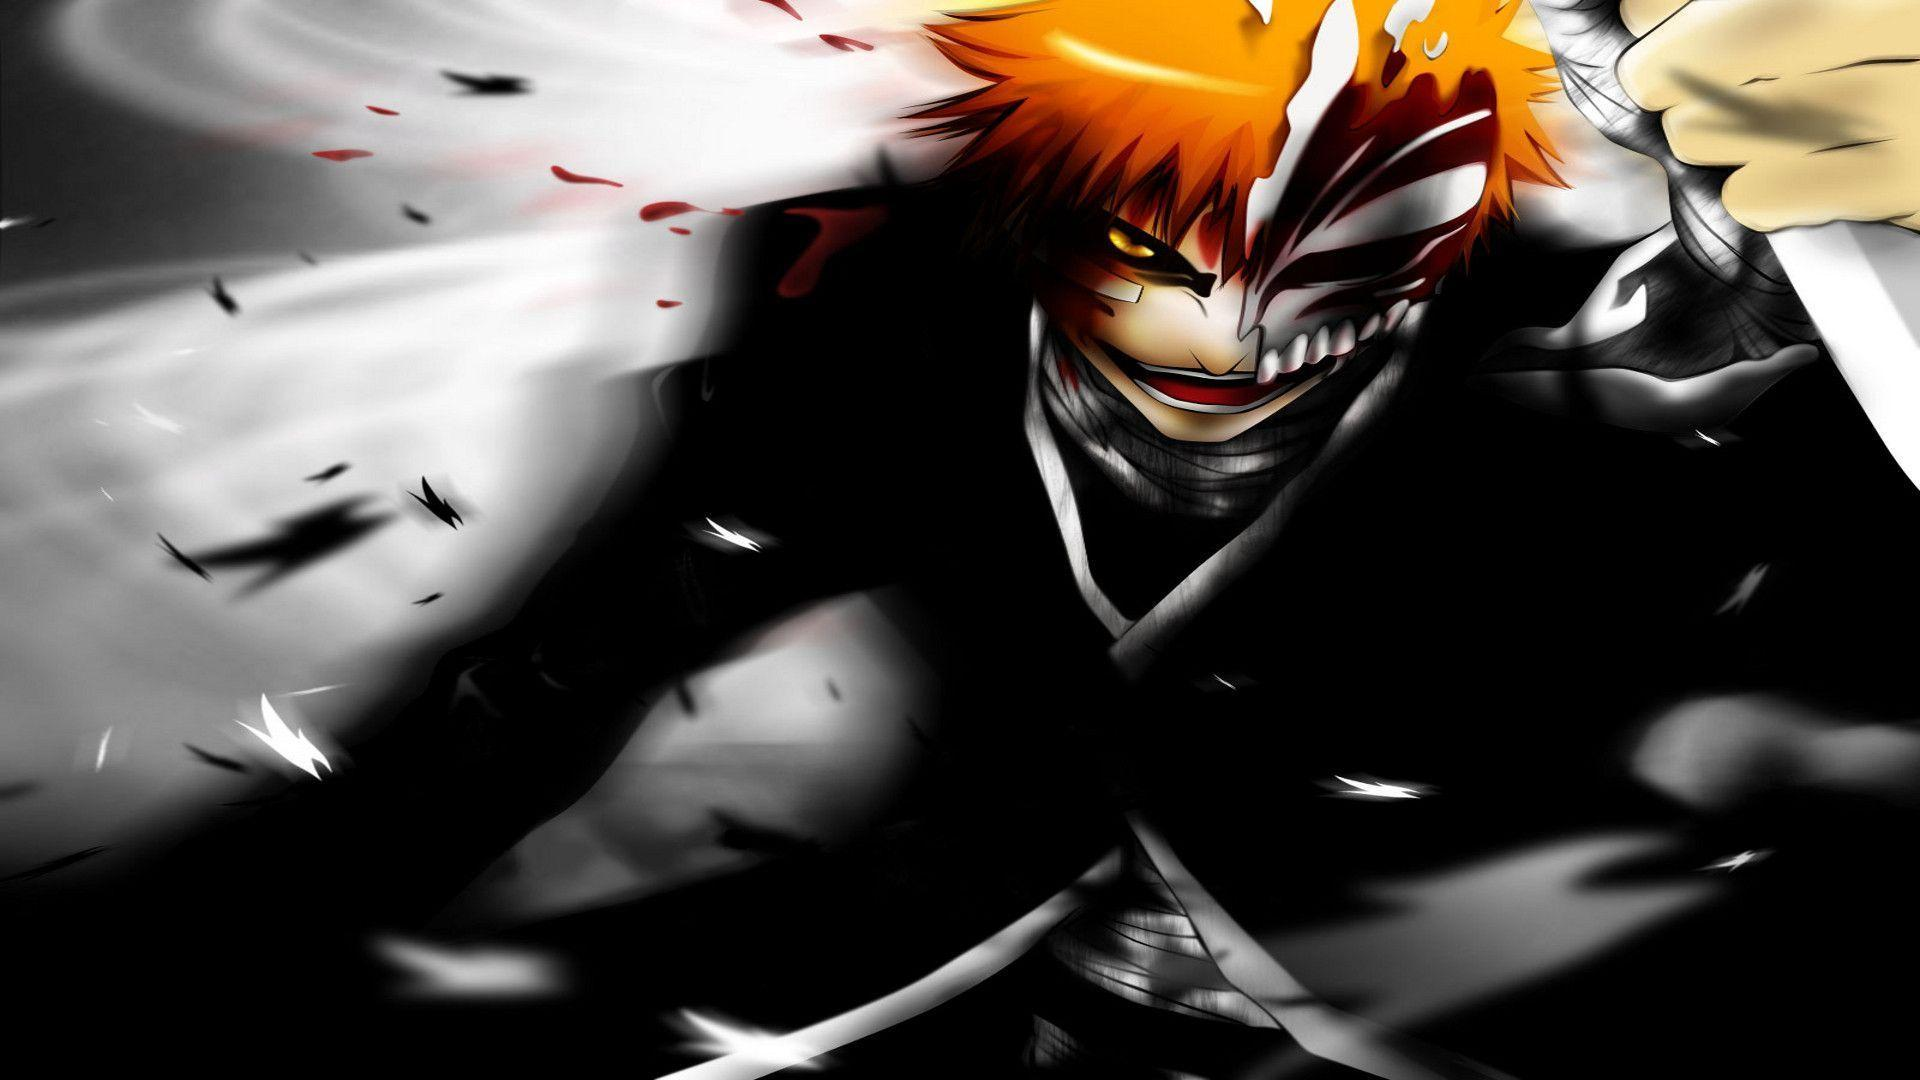 bleach wallpaper 1920 x 1080 - photo #12